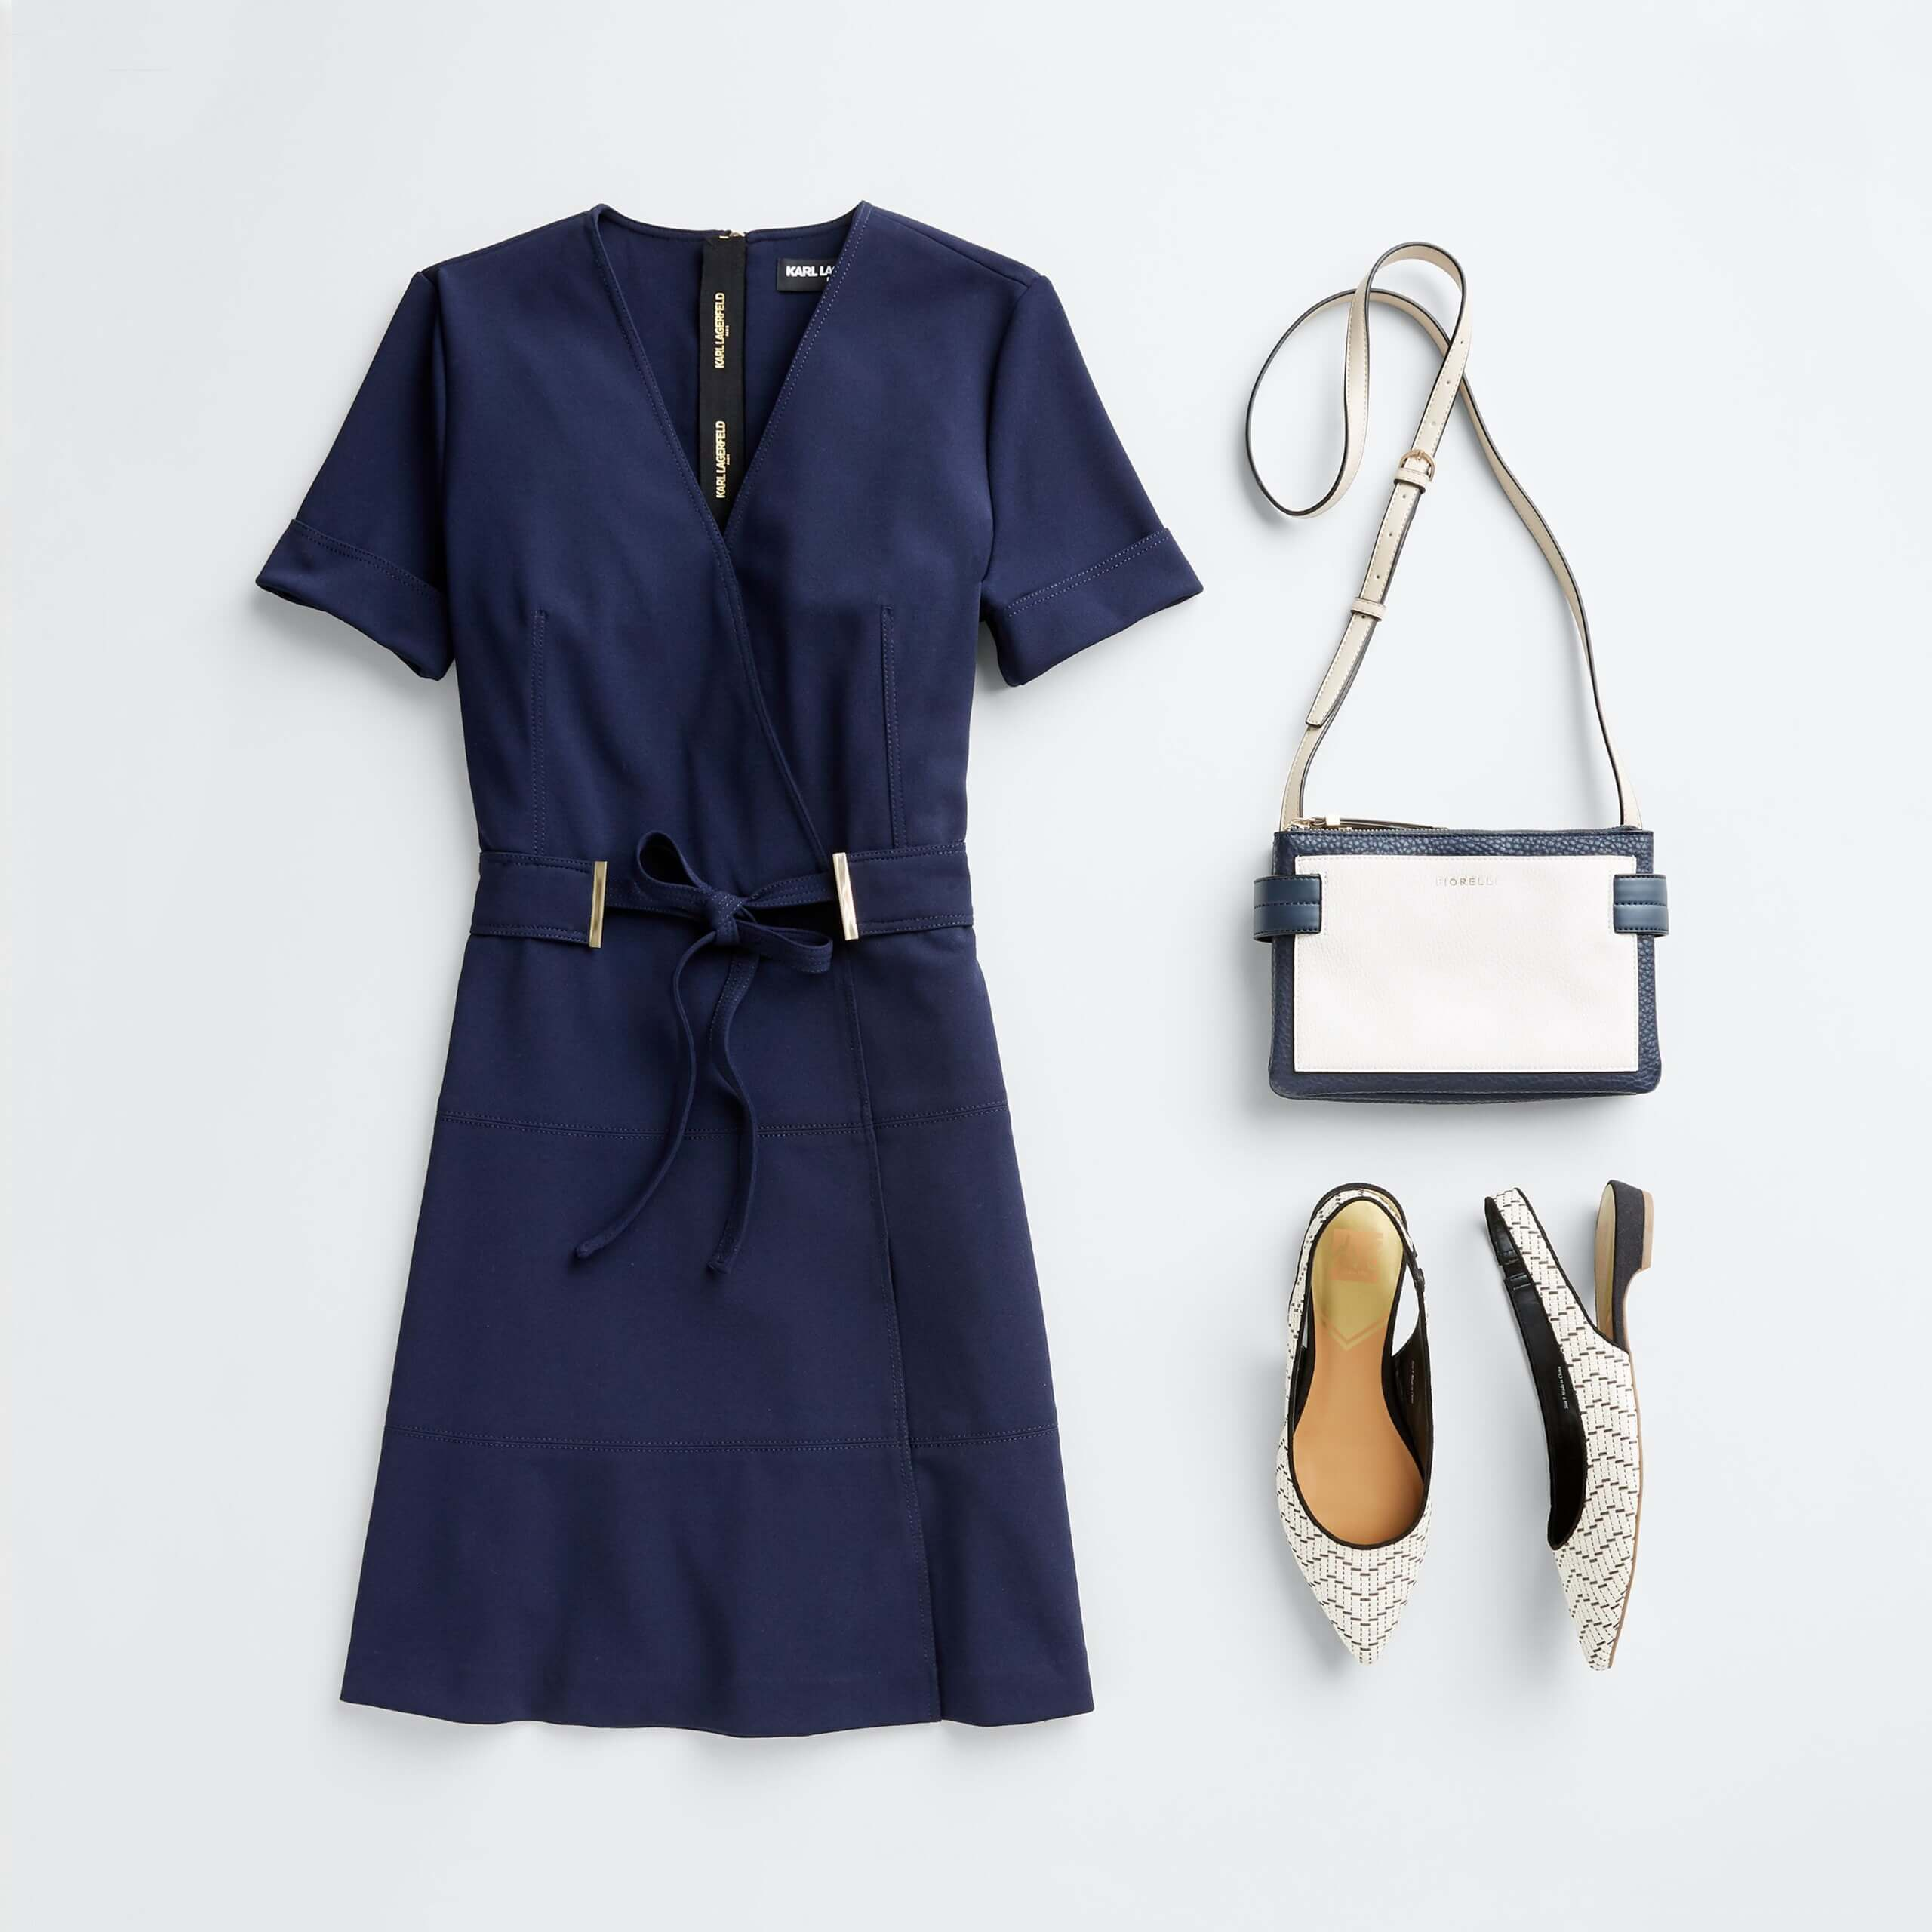 Stitch Fix Women's outfit laydown featuring navy tie-waist dress, white slingback flats and white crossbody purse.